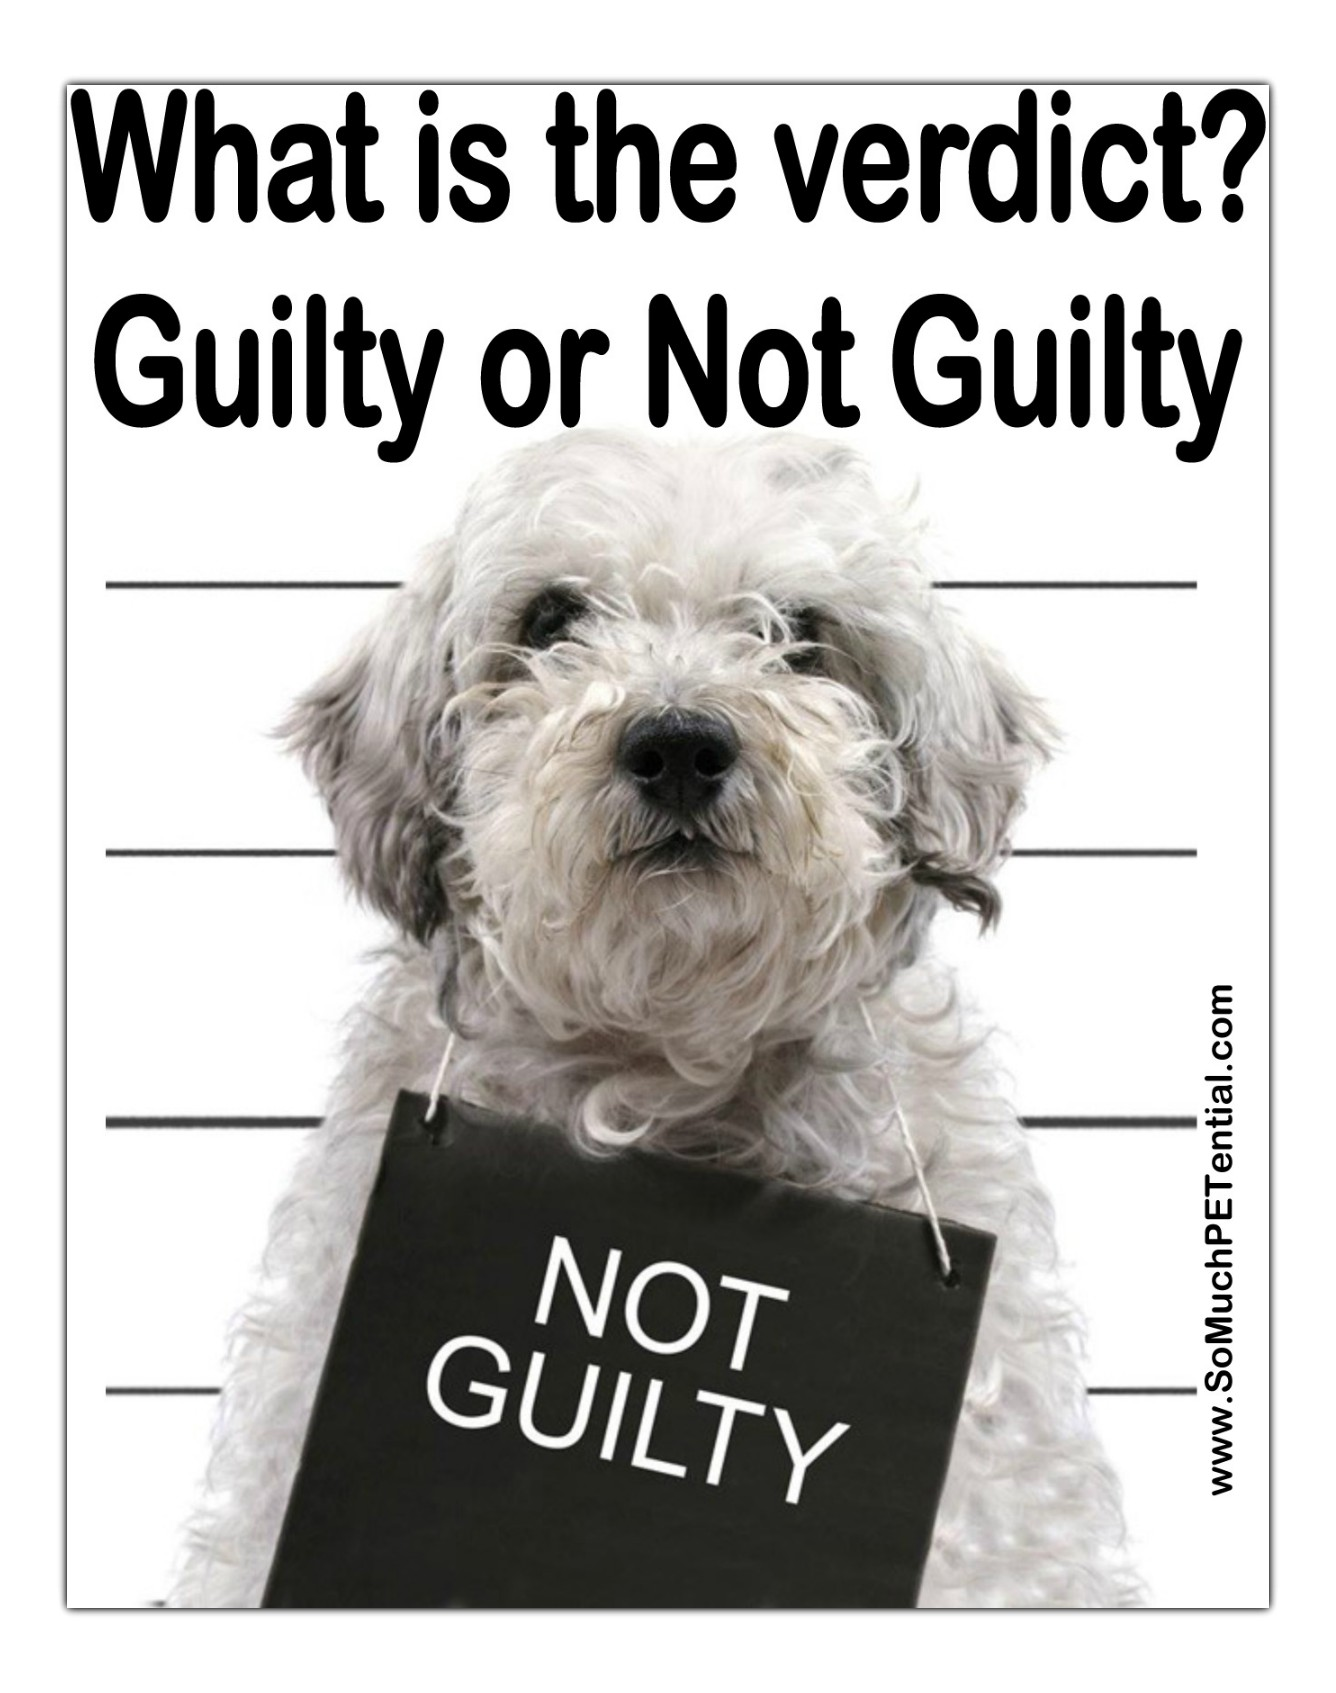 Is Your Dog REALLY A Guilty Dog?